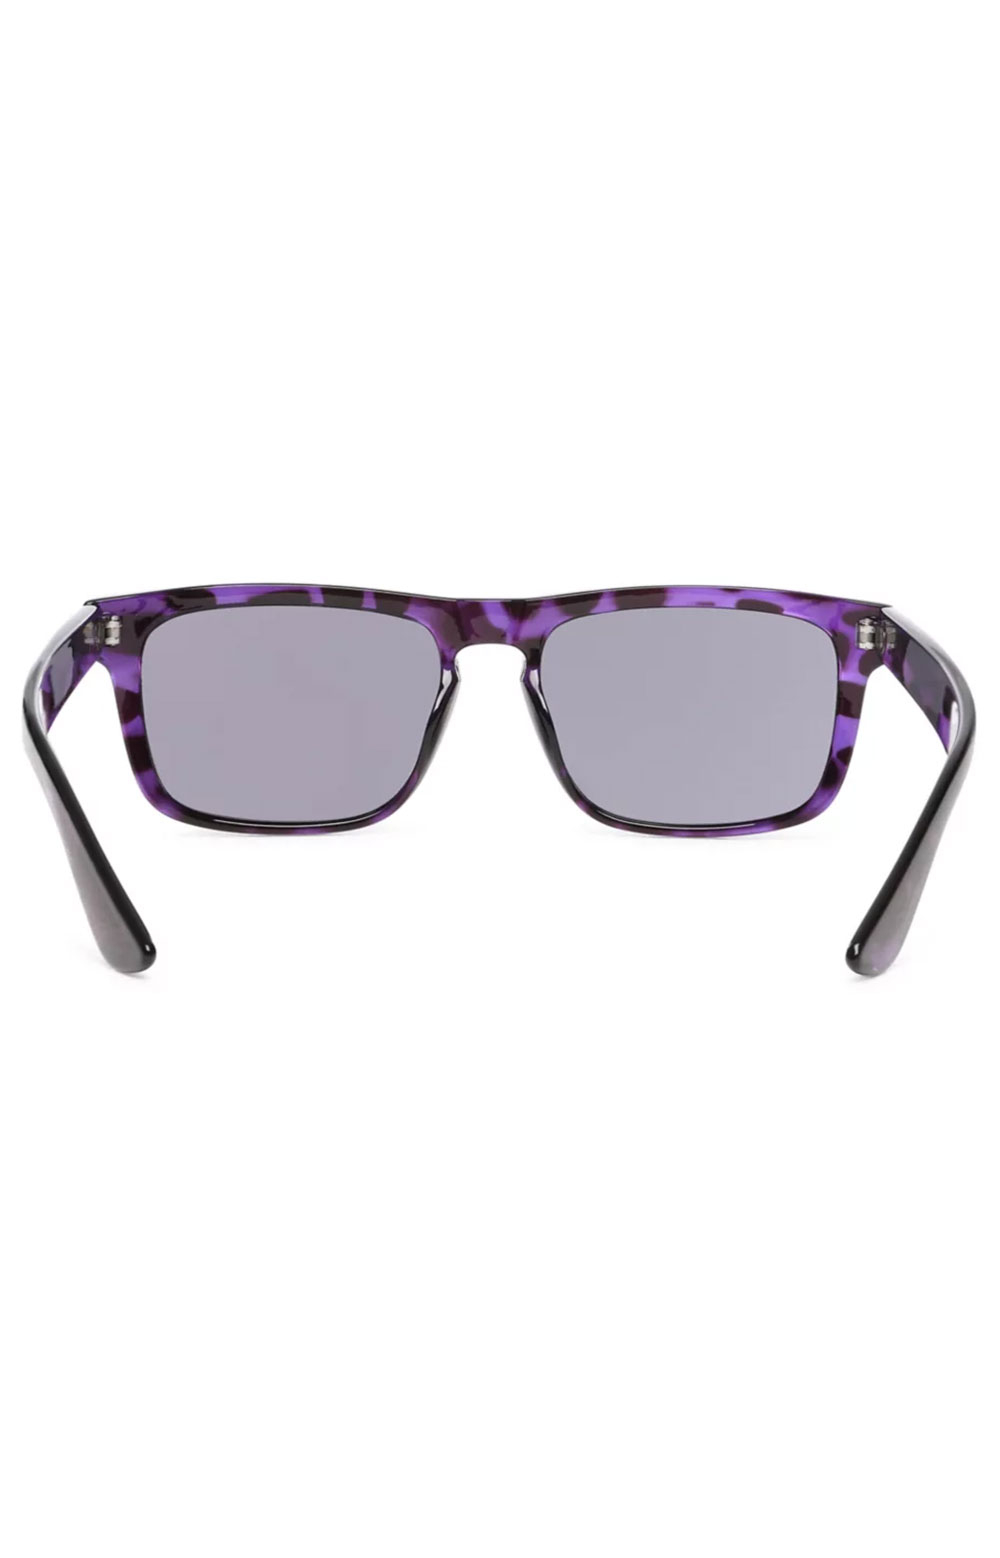 Squared Off Sunglasses - Port Royale  2